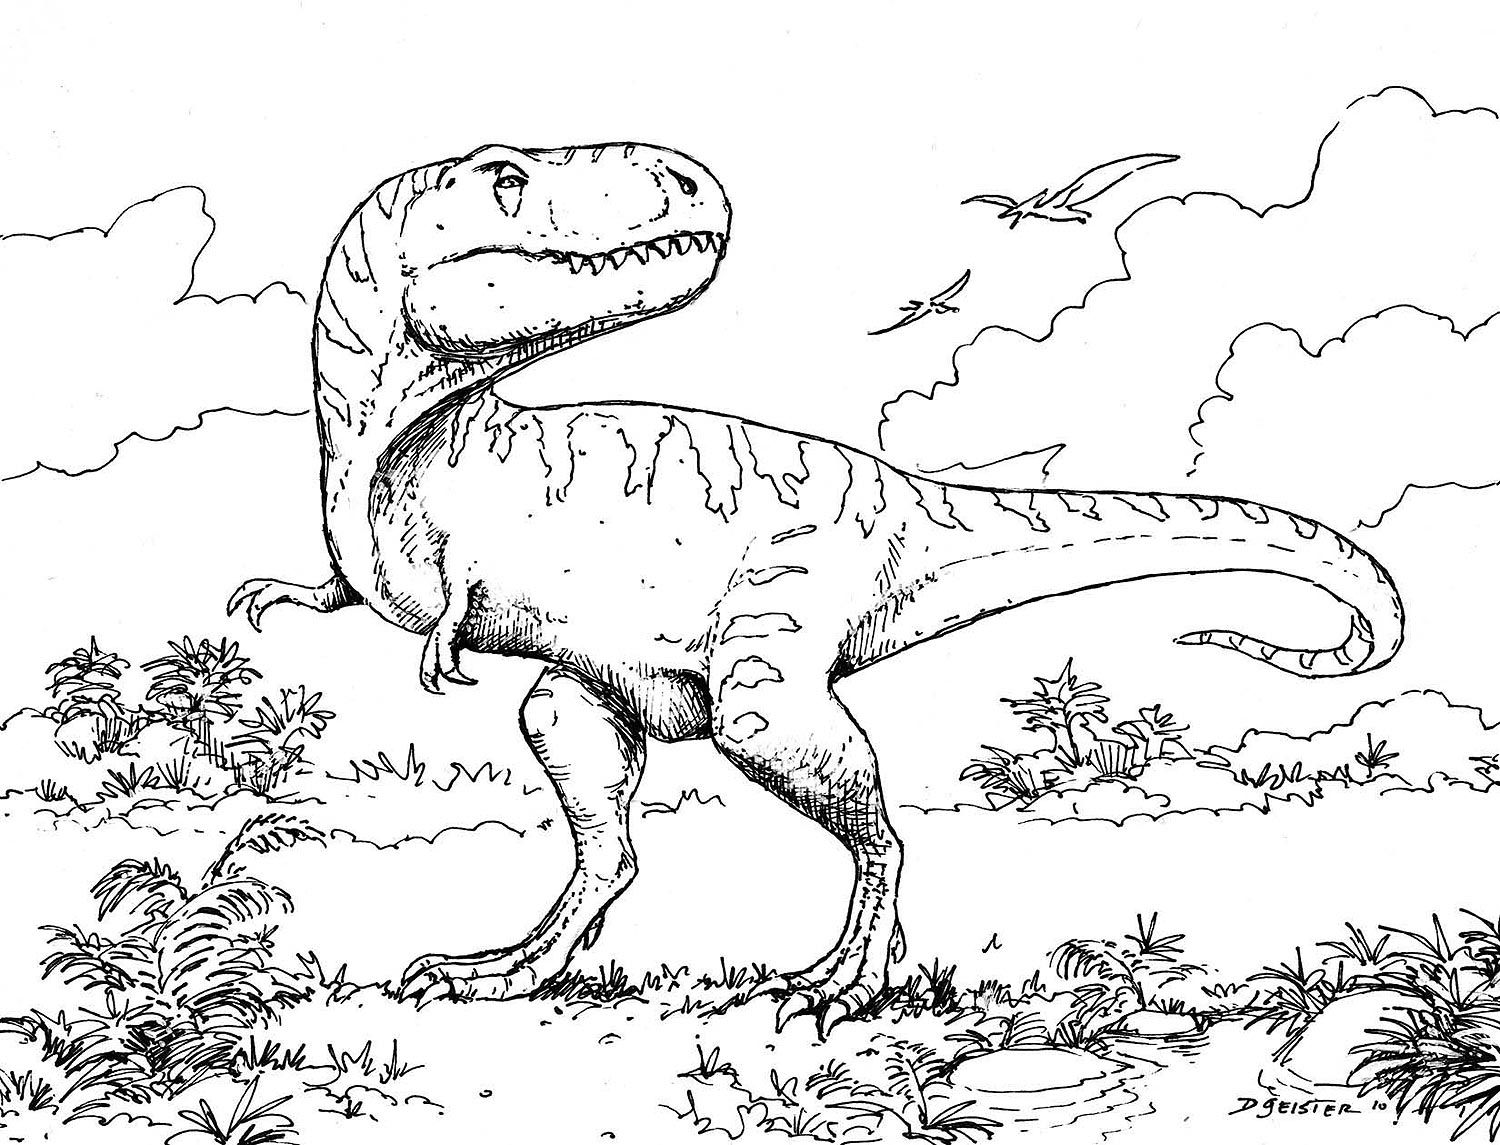 dinosaurs are prehistoric animals known for their gigantic sizes